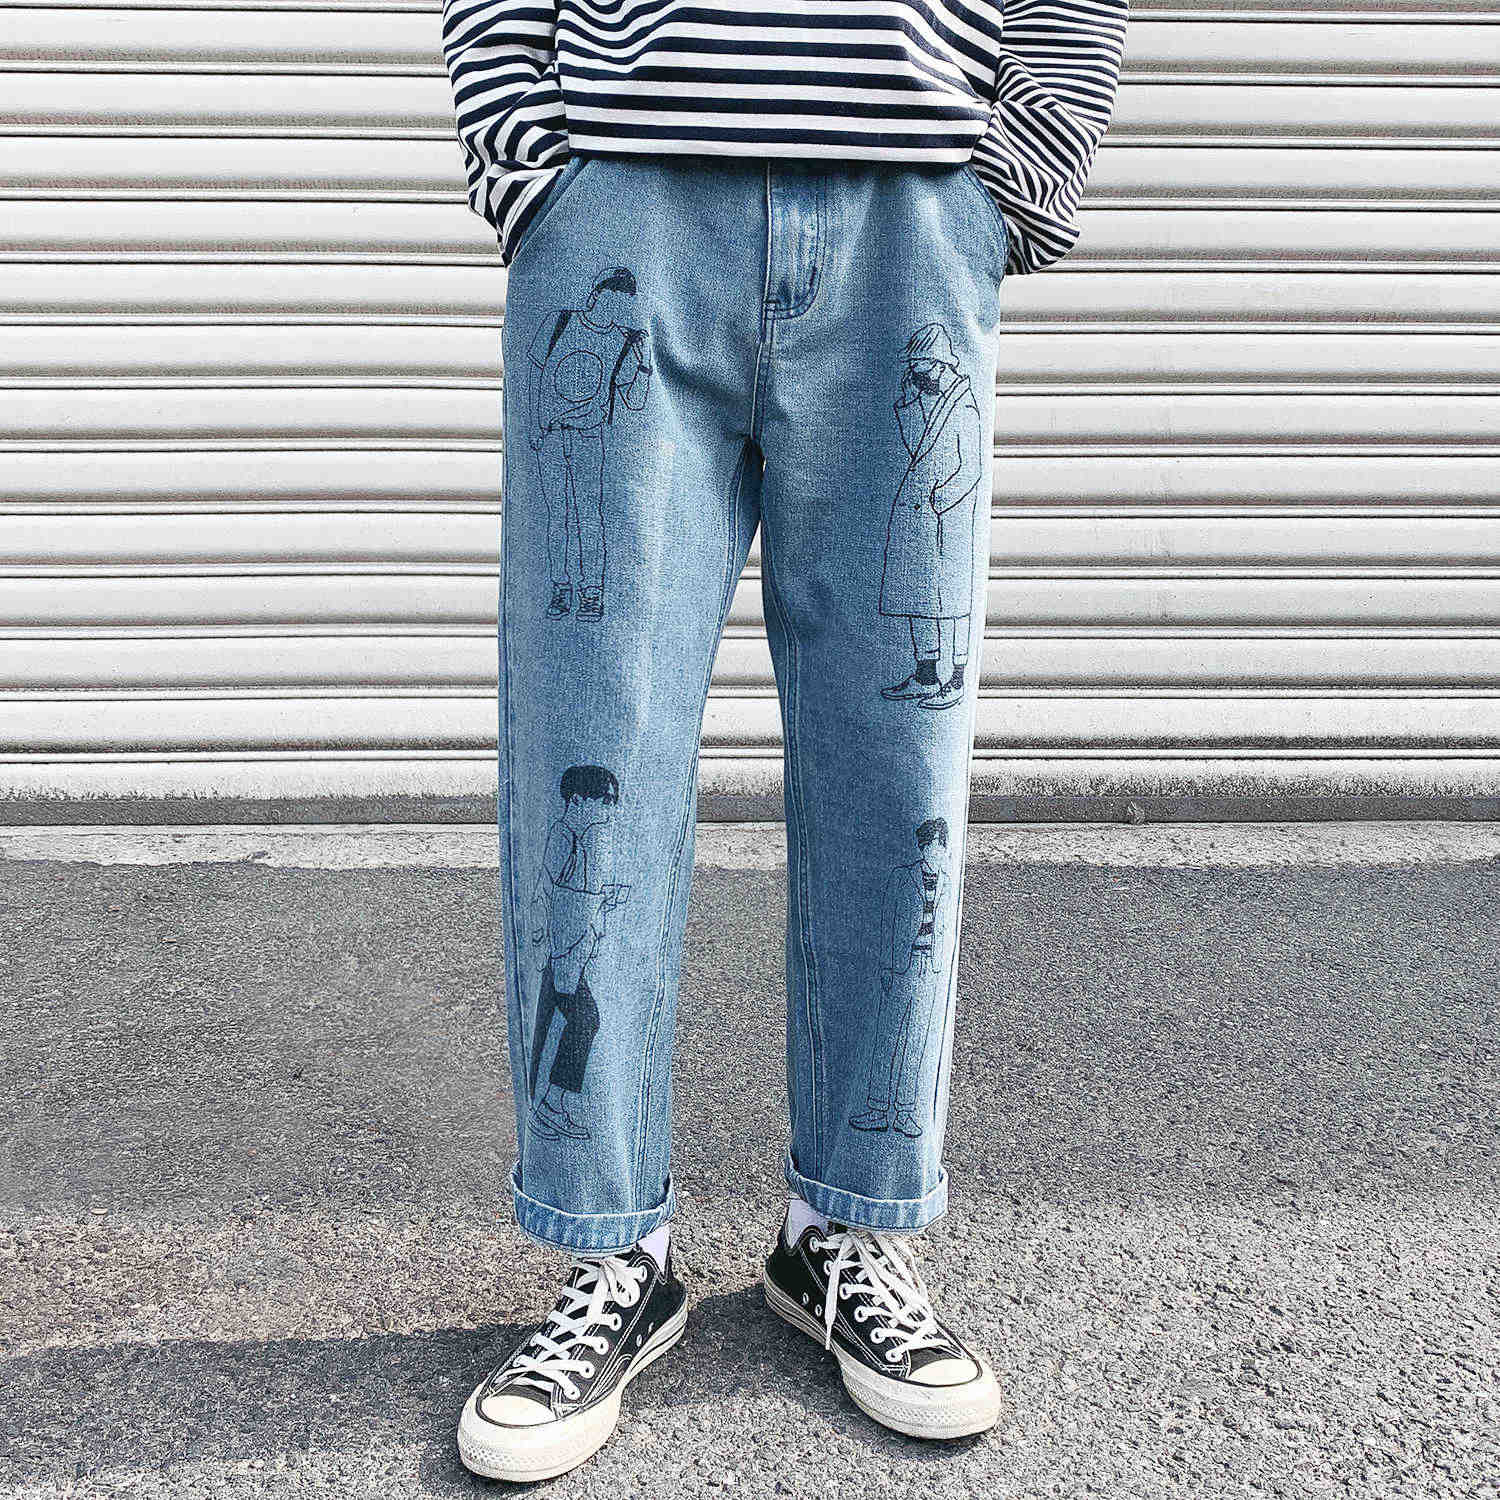 2019 Men's Cartoon Printing Leisure Casual Pants Work Cargo Pocket Wash Jeans Baggy Homme Mens Blue Trousers Big Size M-5XL